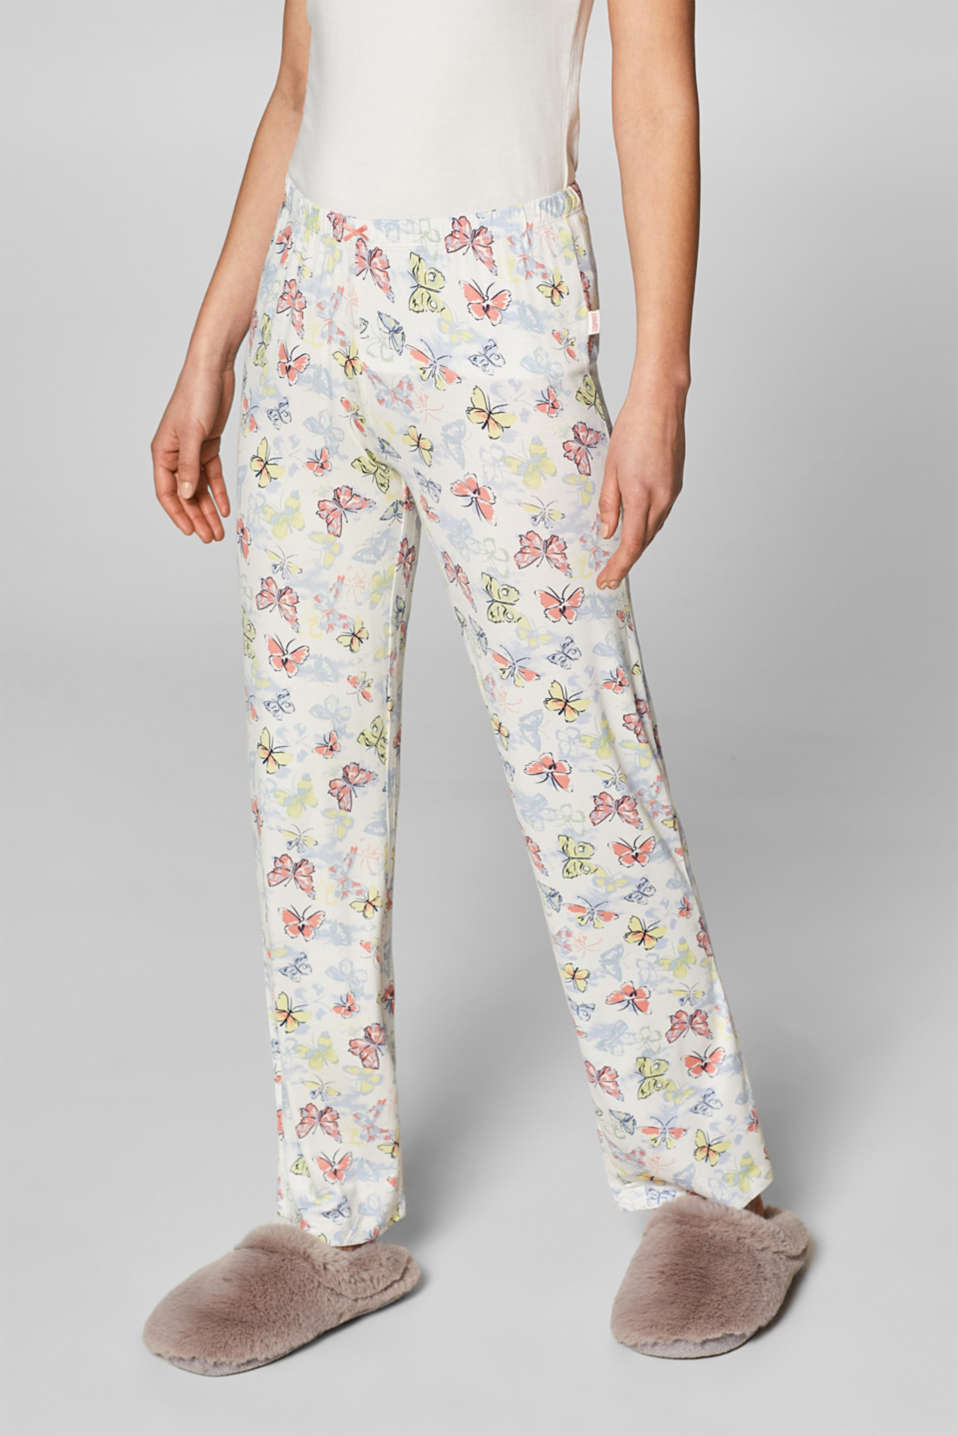 Esprit - Printed pyjama bottoms in stretch jersey